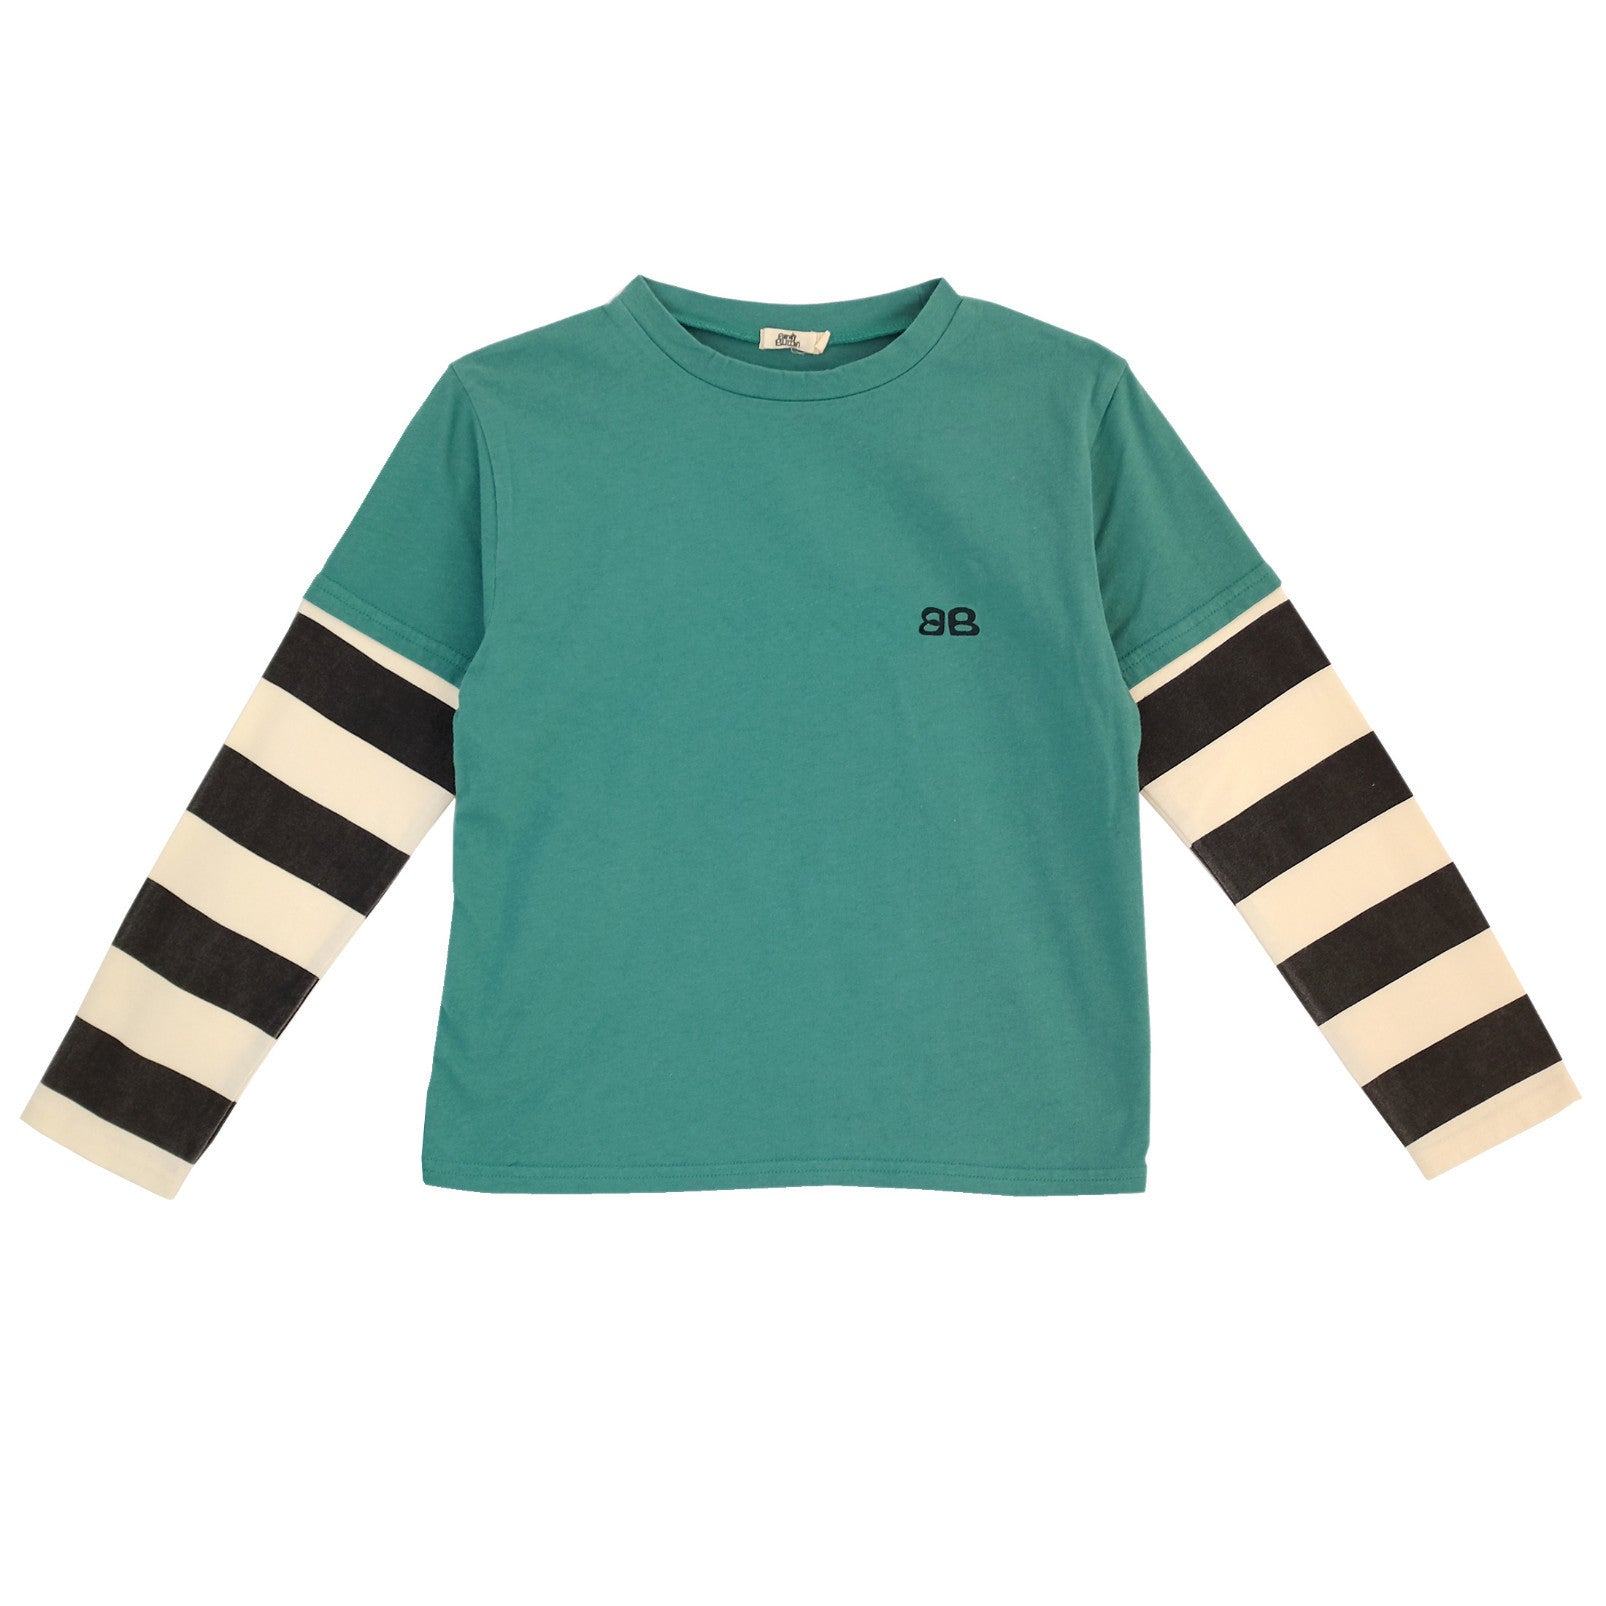 Bandy Button Kary Long Sleeve Tee